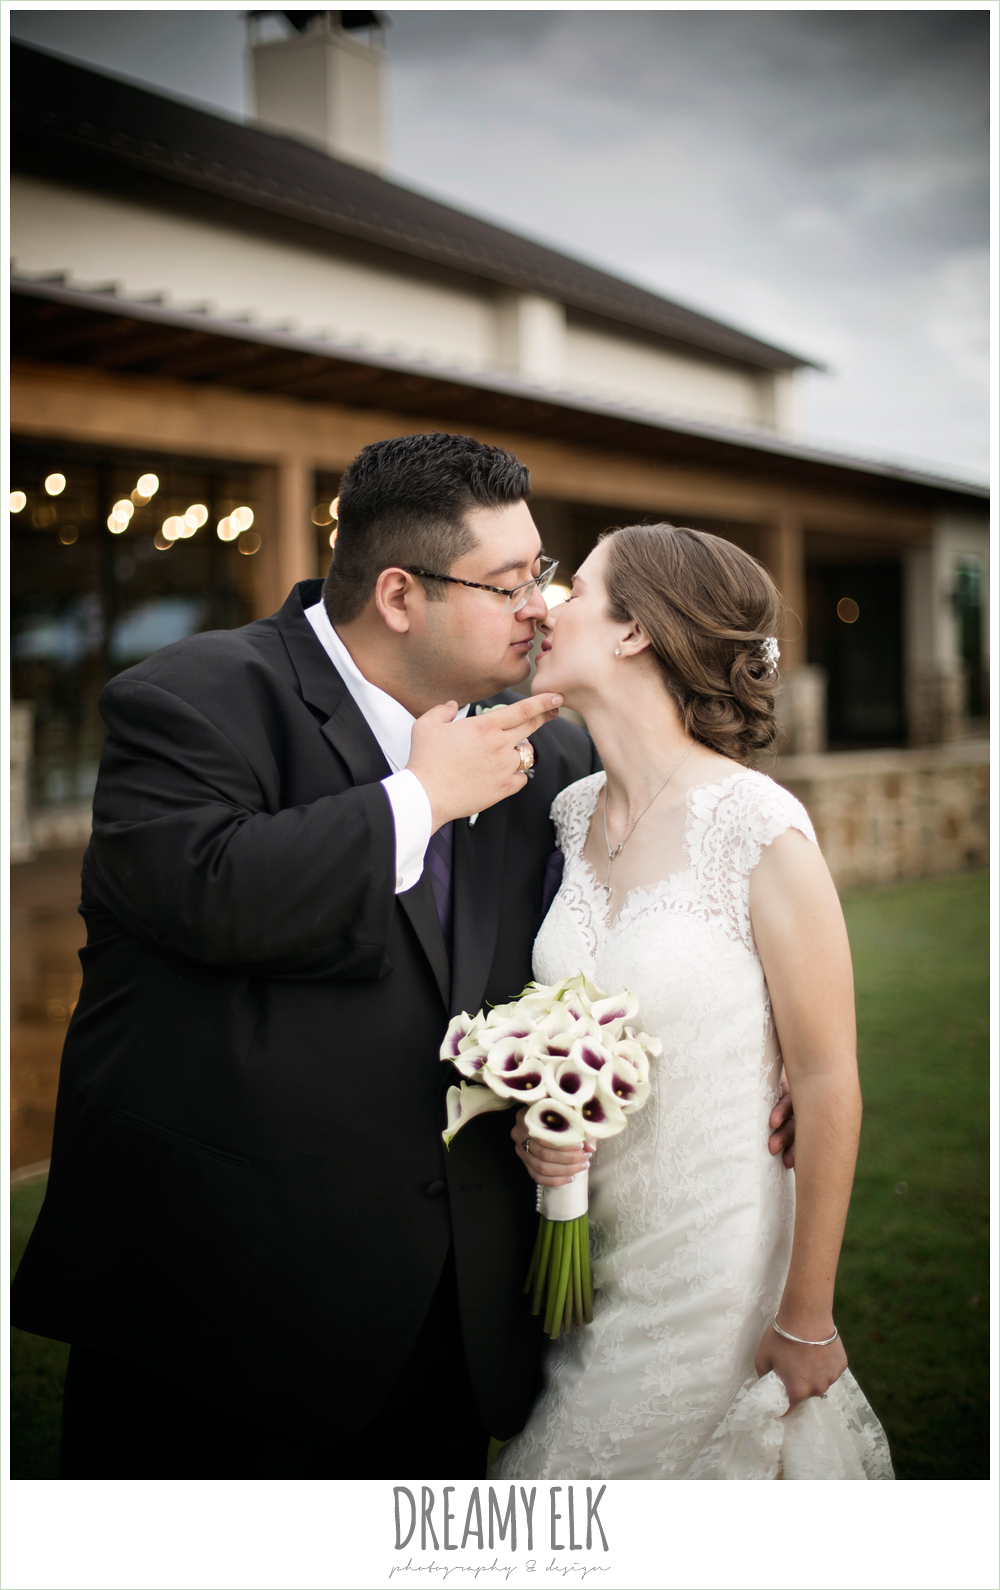 calla lily wedding bouquet, lace wedding dress, outdoor bride and groom portraits, purple and gold wedding, fall rainy wedding, canyonwood ridge, dripping springs, texas, photo {dreamy elk photography and design}